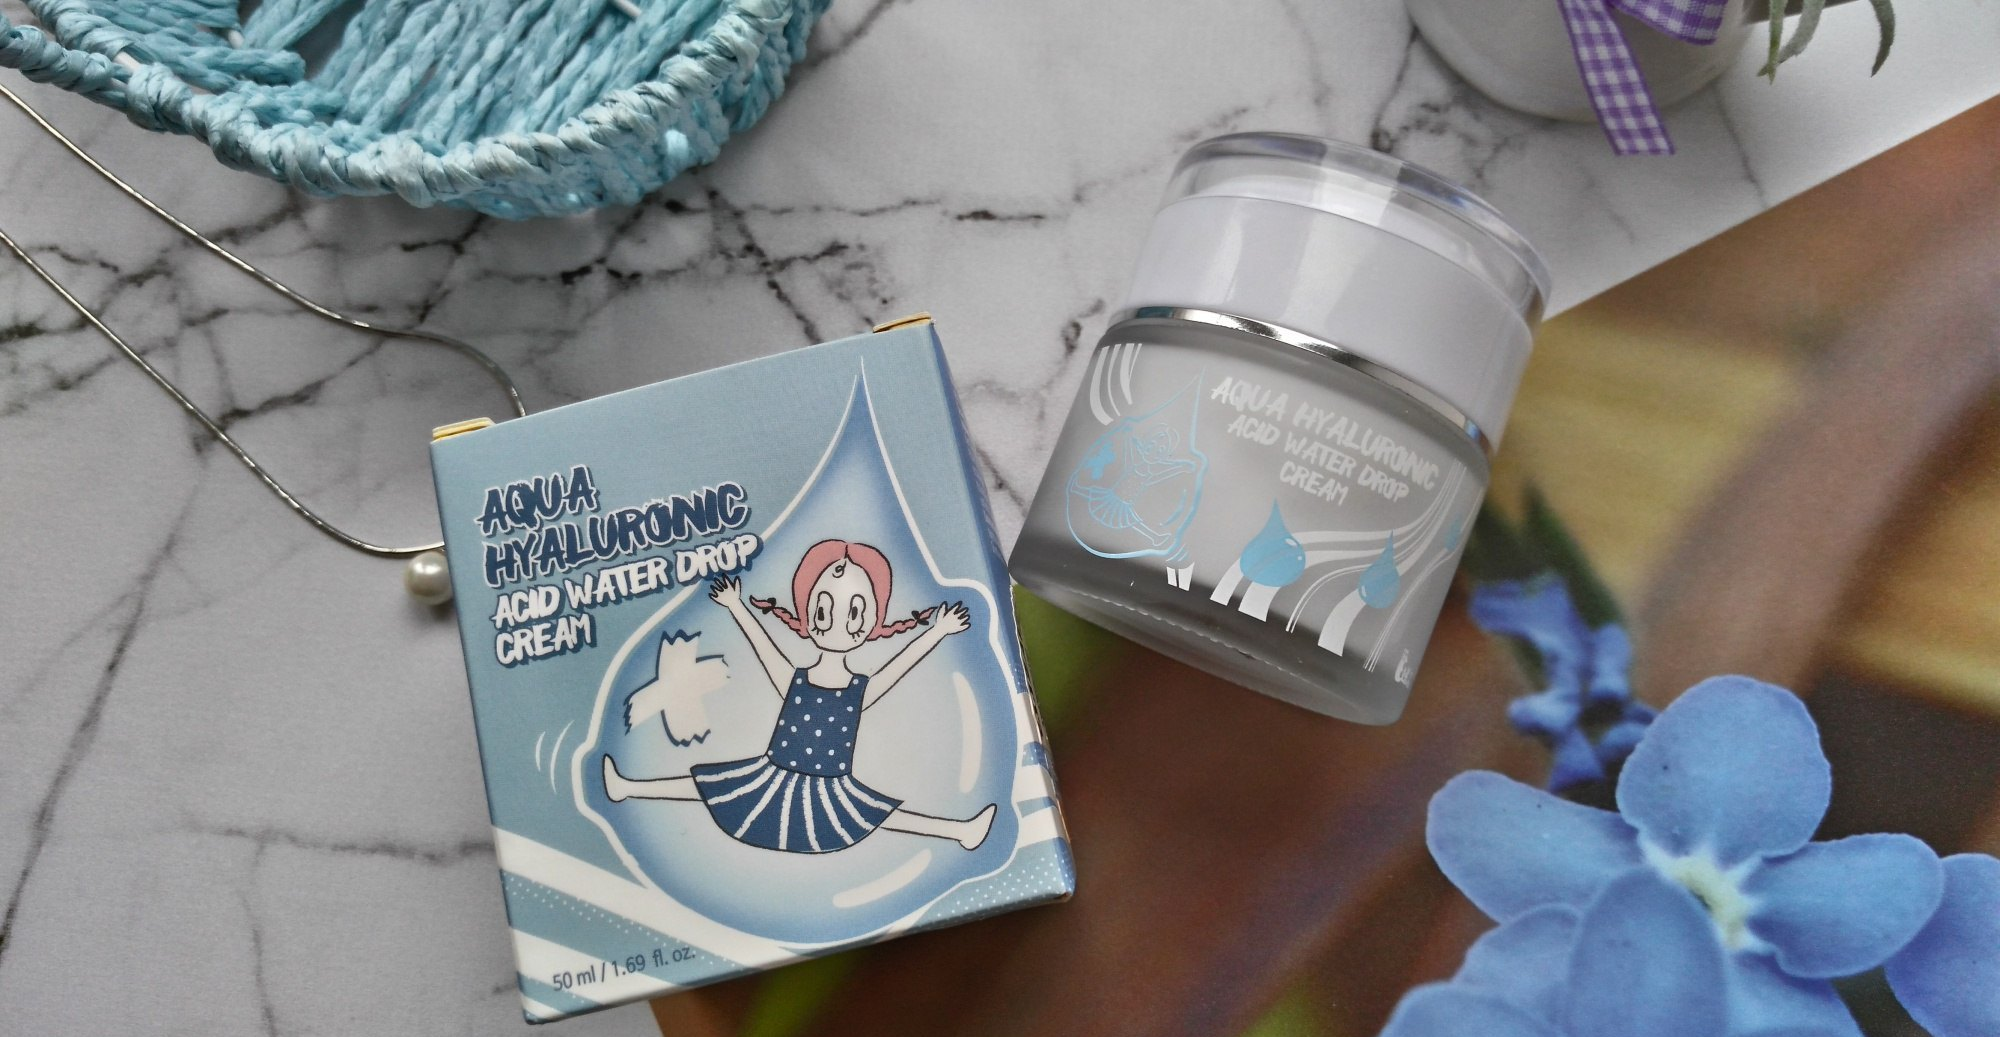 ELIZAVECCA Aqua Hyaluronic Acid Water Drop Cream